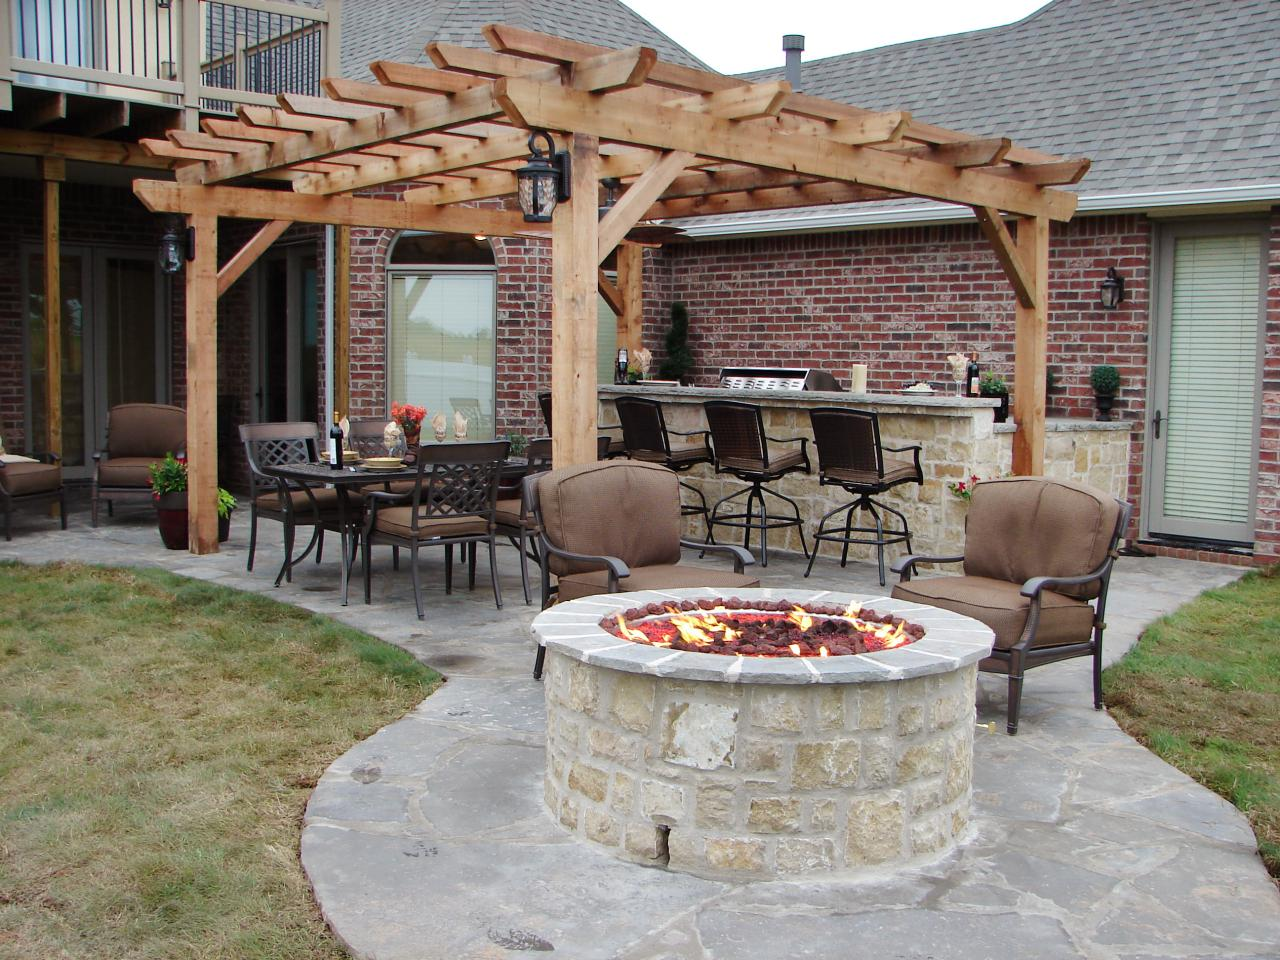 Patio Design Ideas With Fire Pits | Home Design Ideas